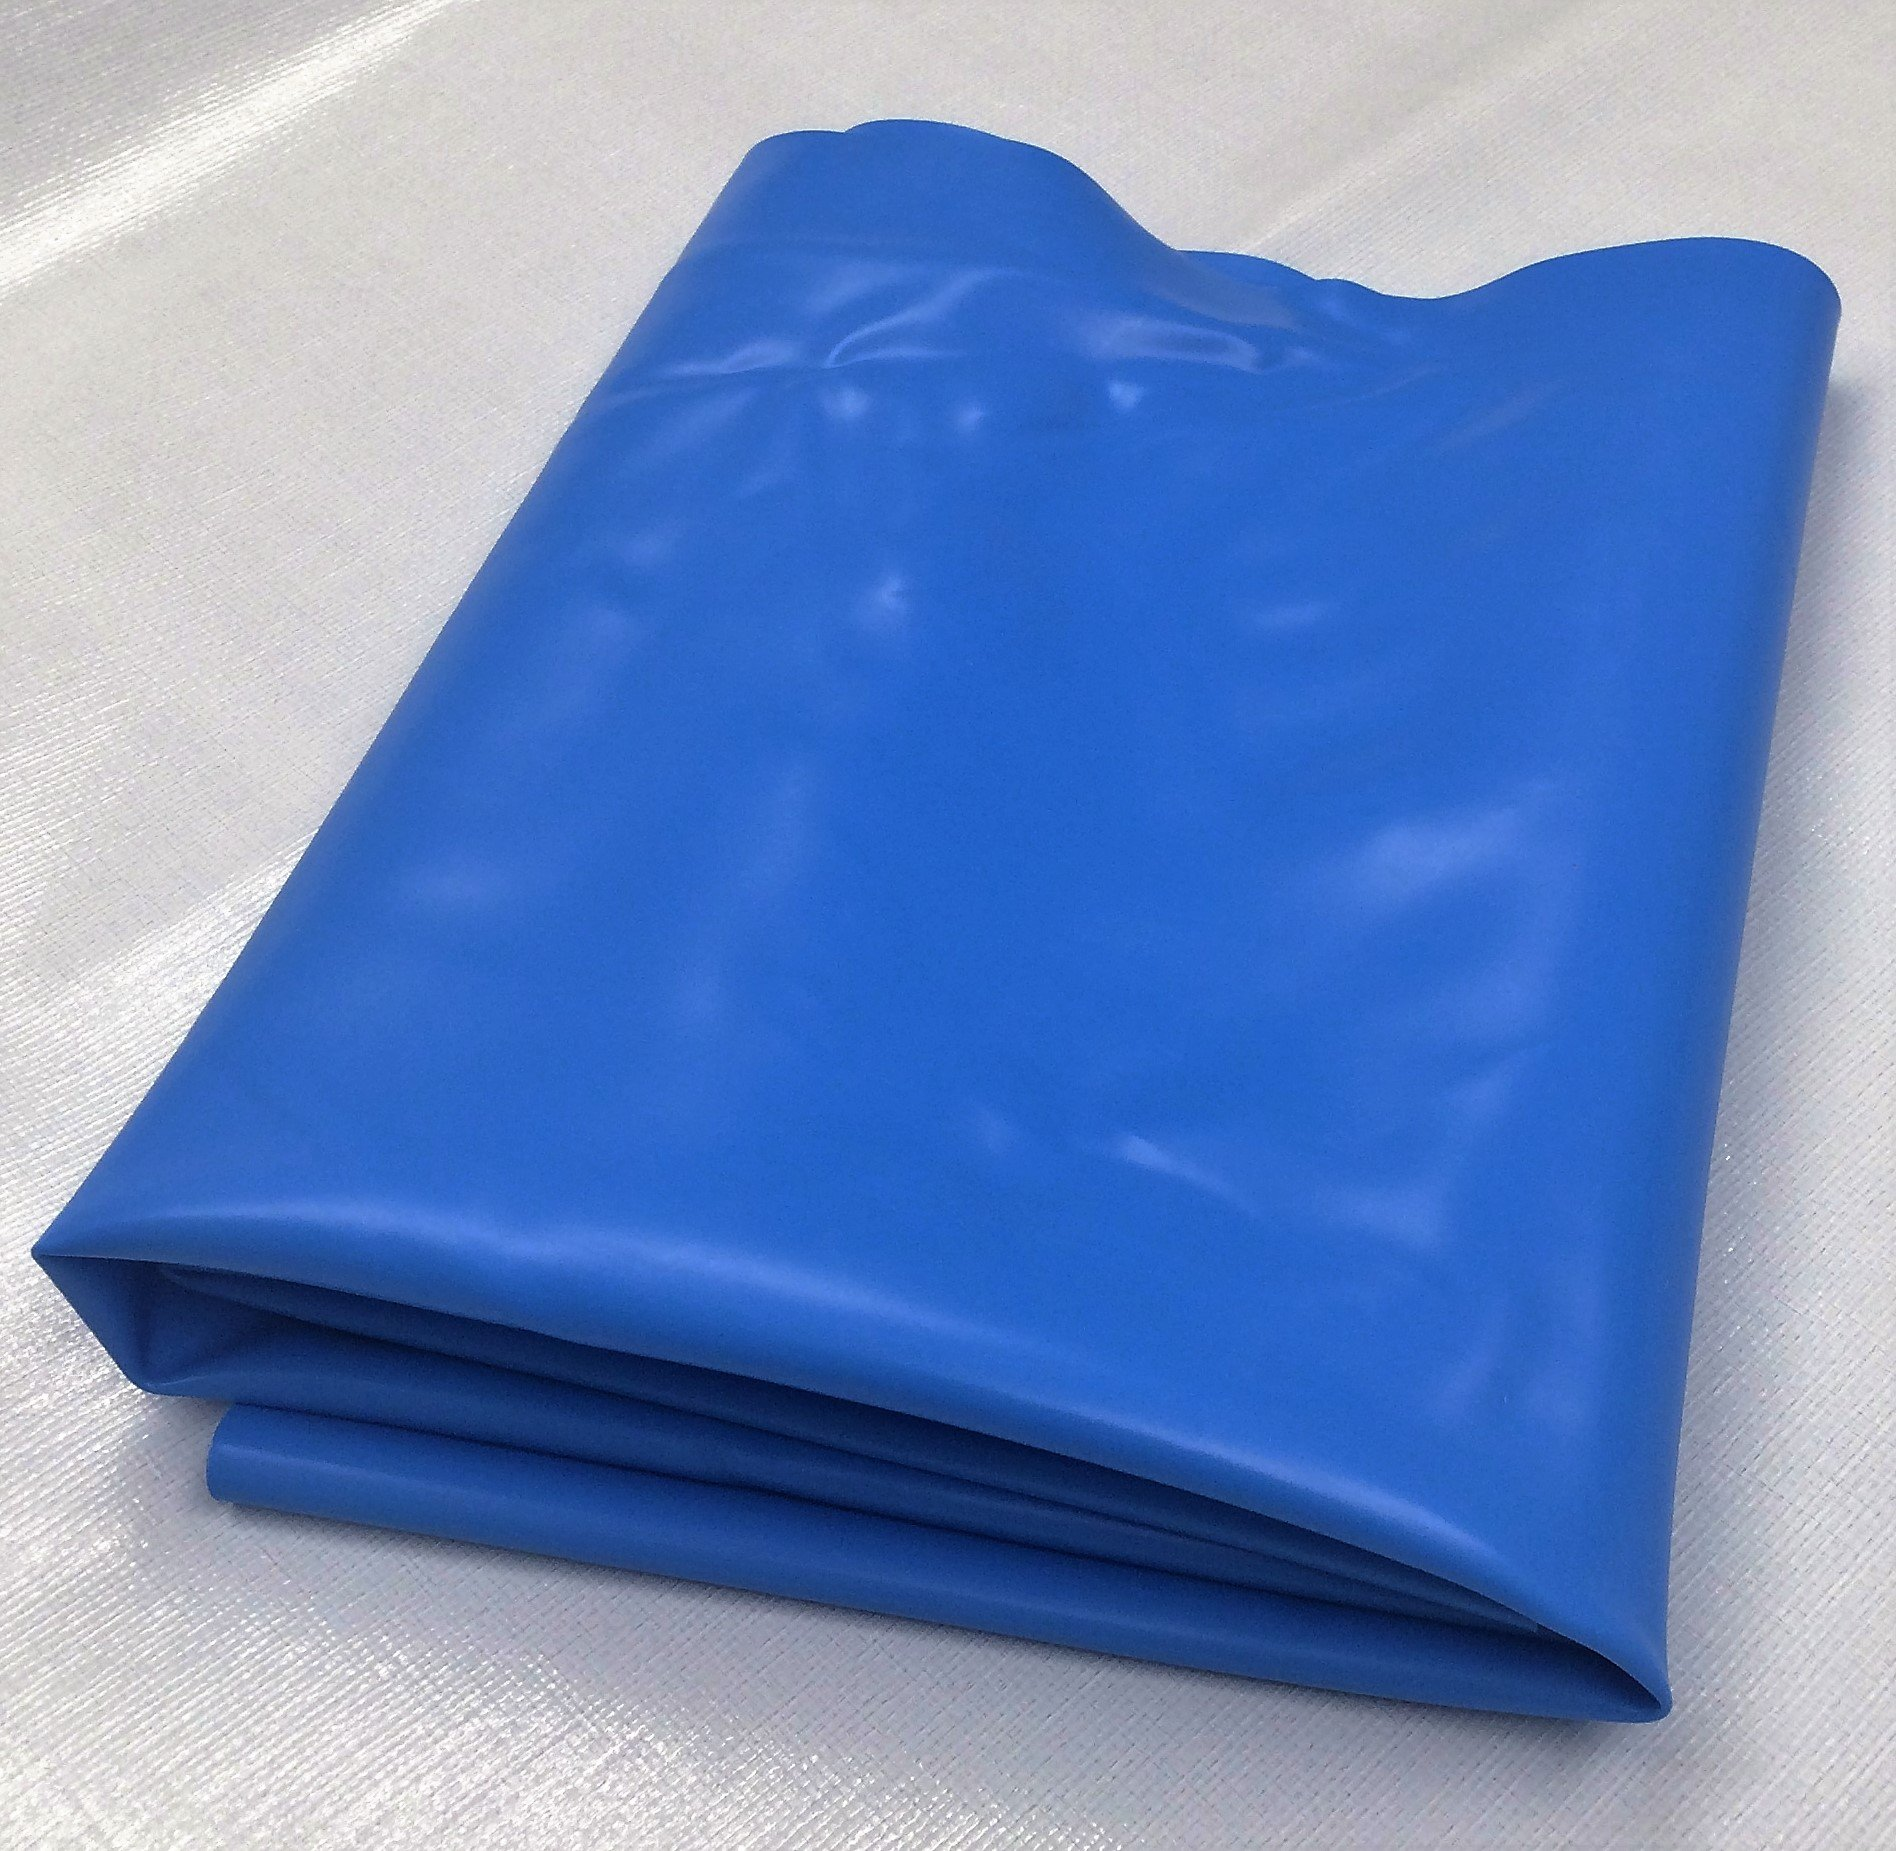 Blue Pond Liner - 18' x 20' in 30-mil Blue PVC for Koi Ponds, Streams, Fountains and Water Gardens by USA Pond Products